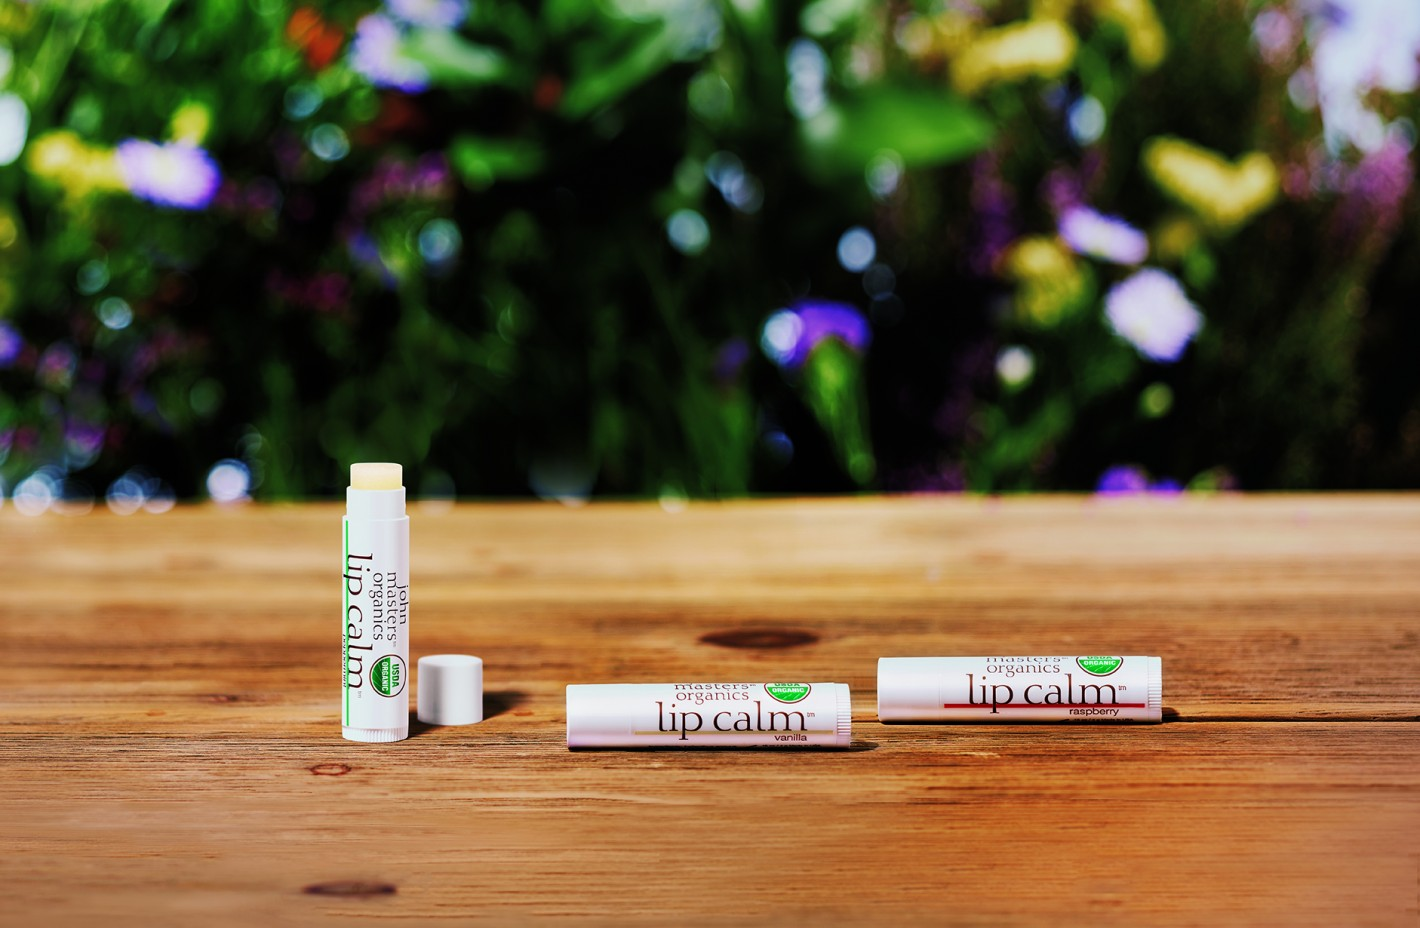 New_lipcalm_image